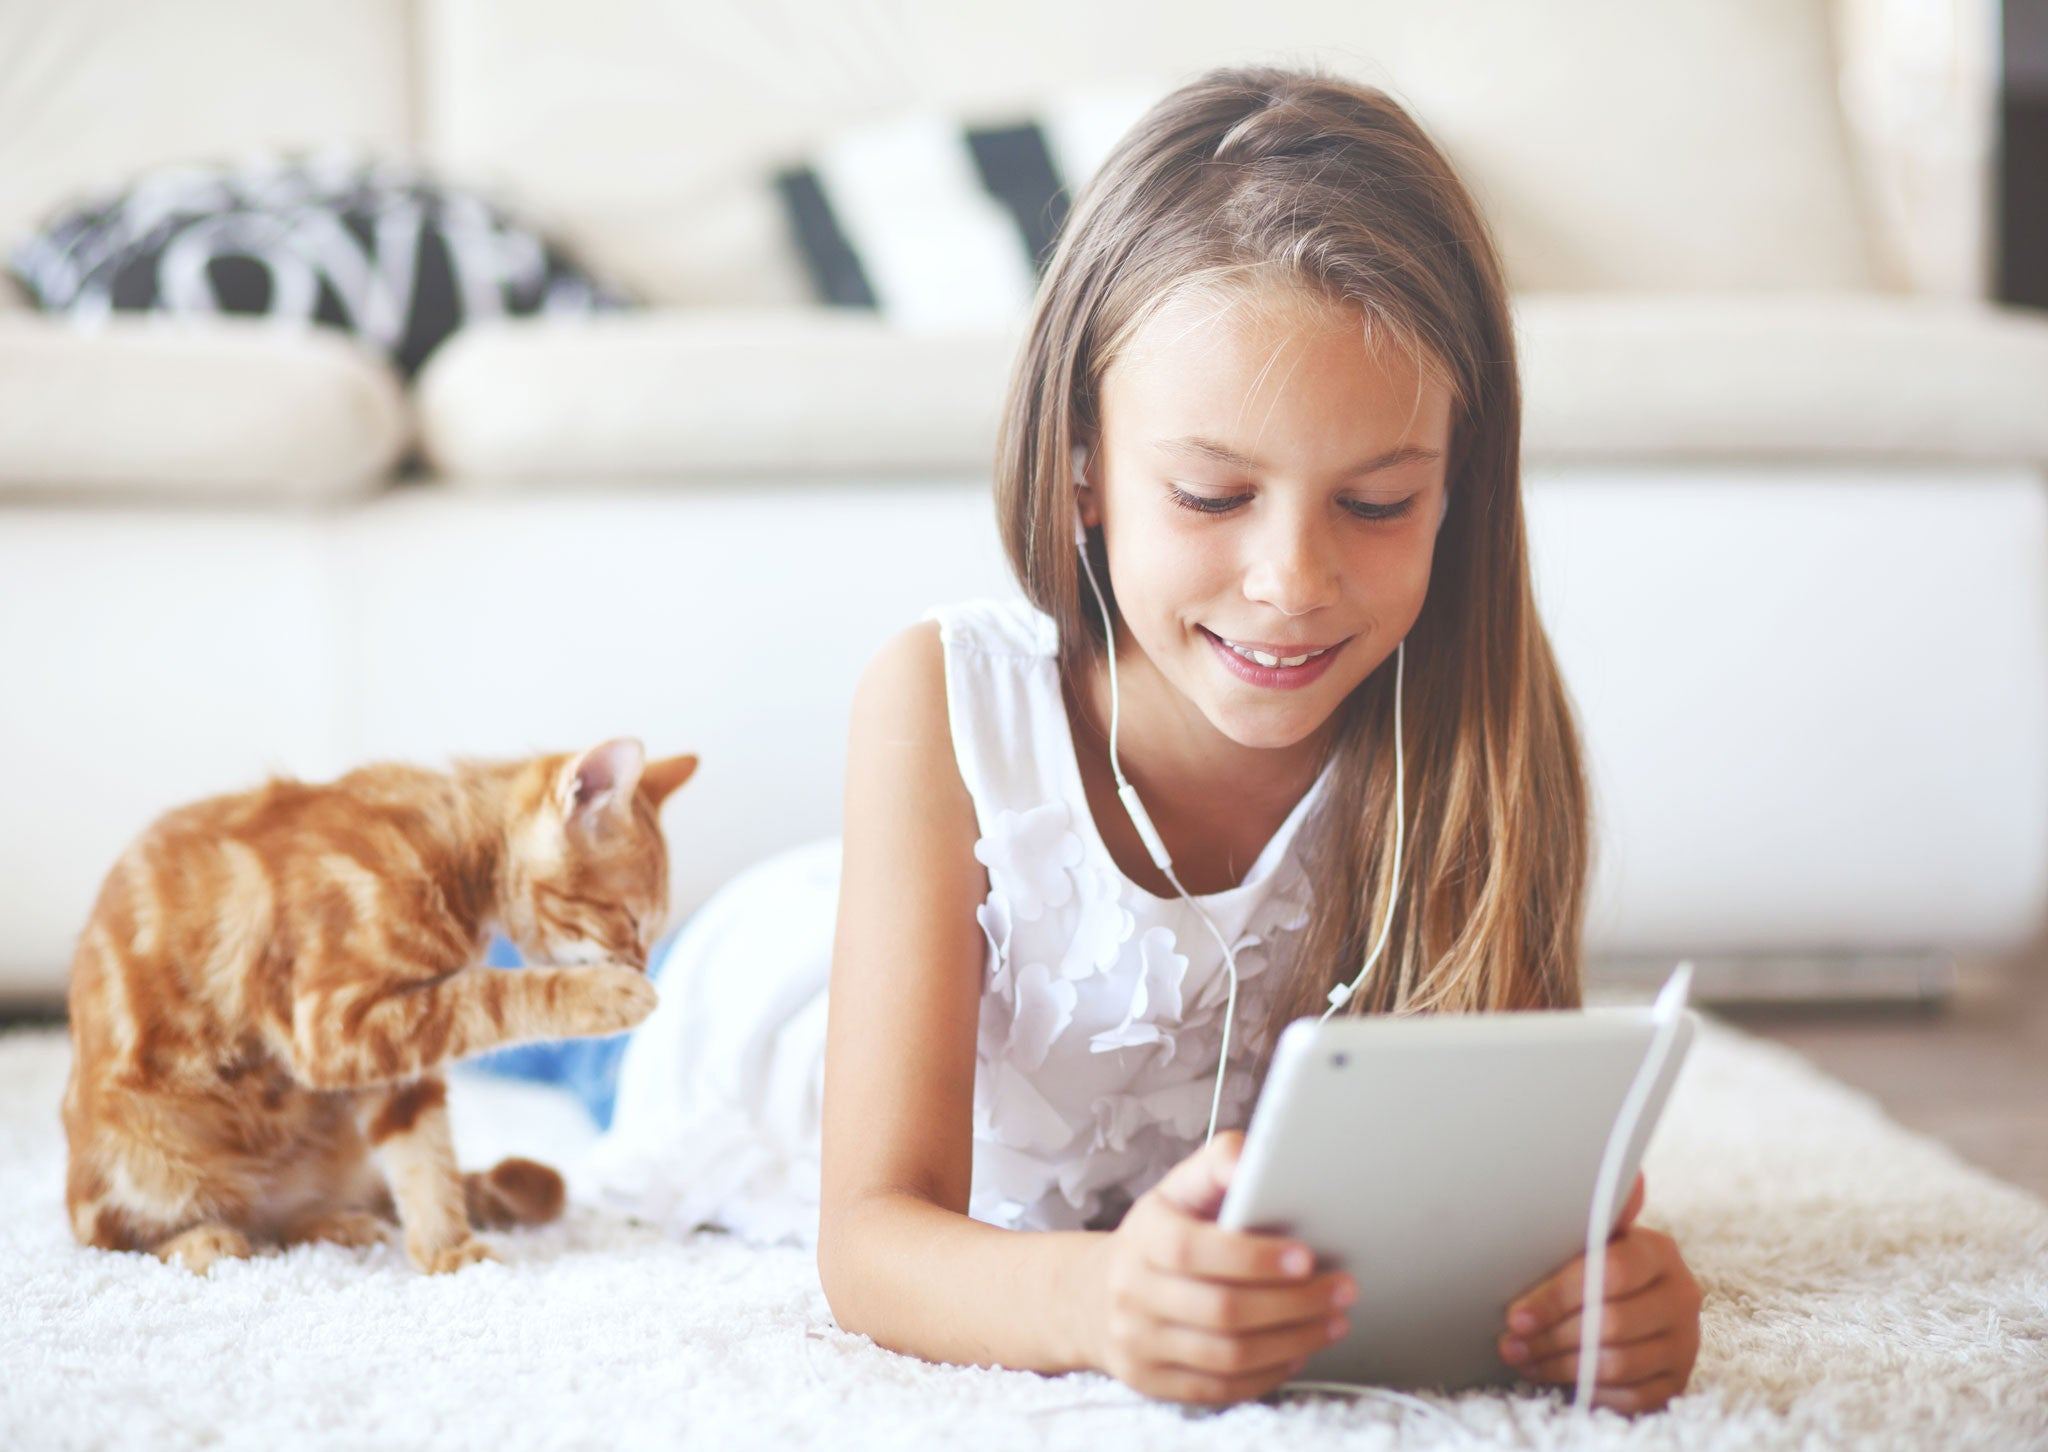 Children And Screen Use: Good, Bad, Or Just The Way It Is? - Lovefone, London